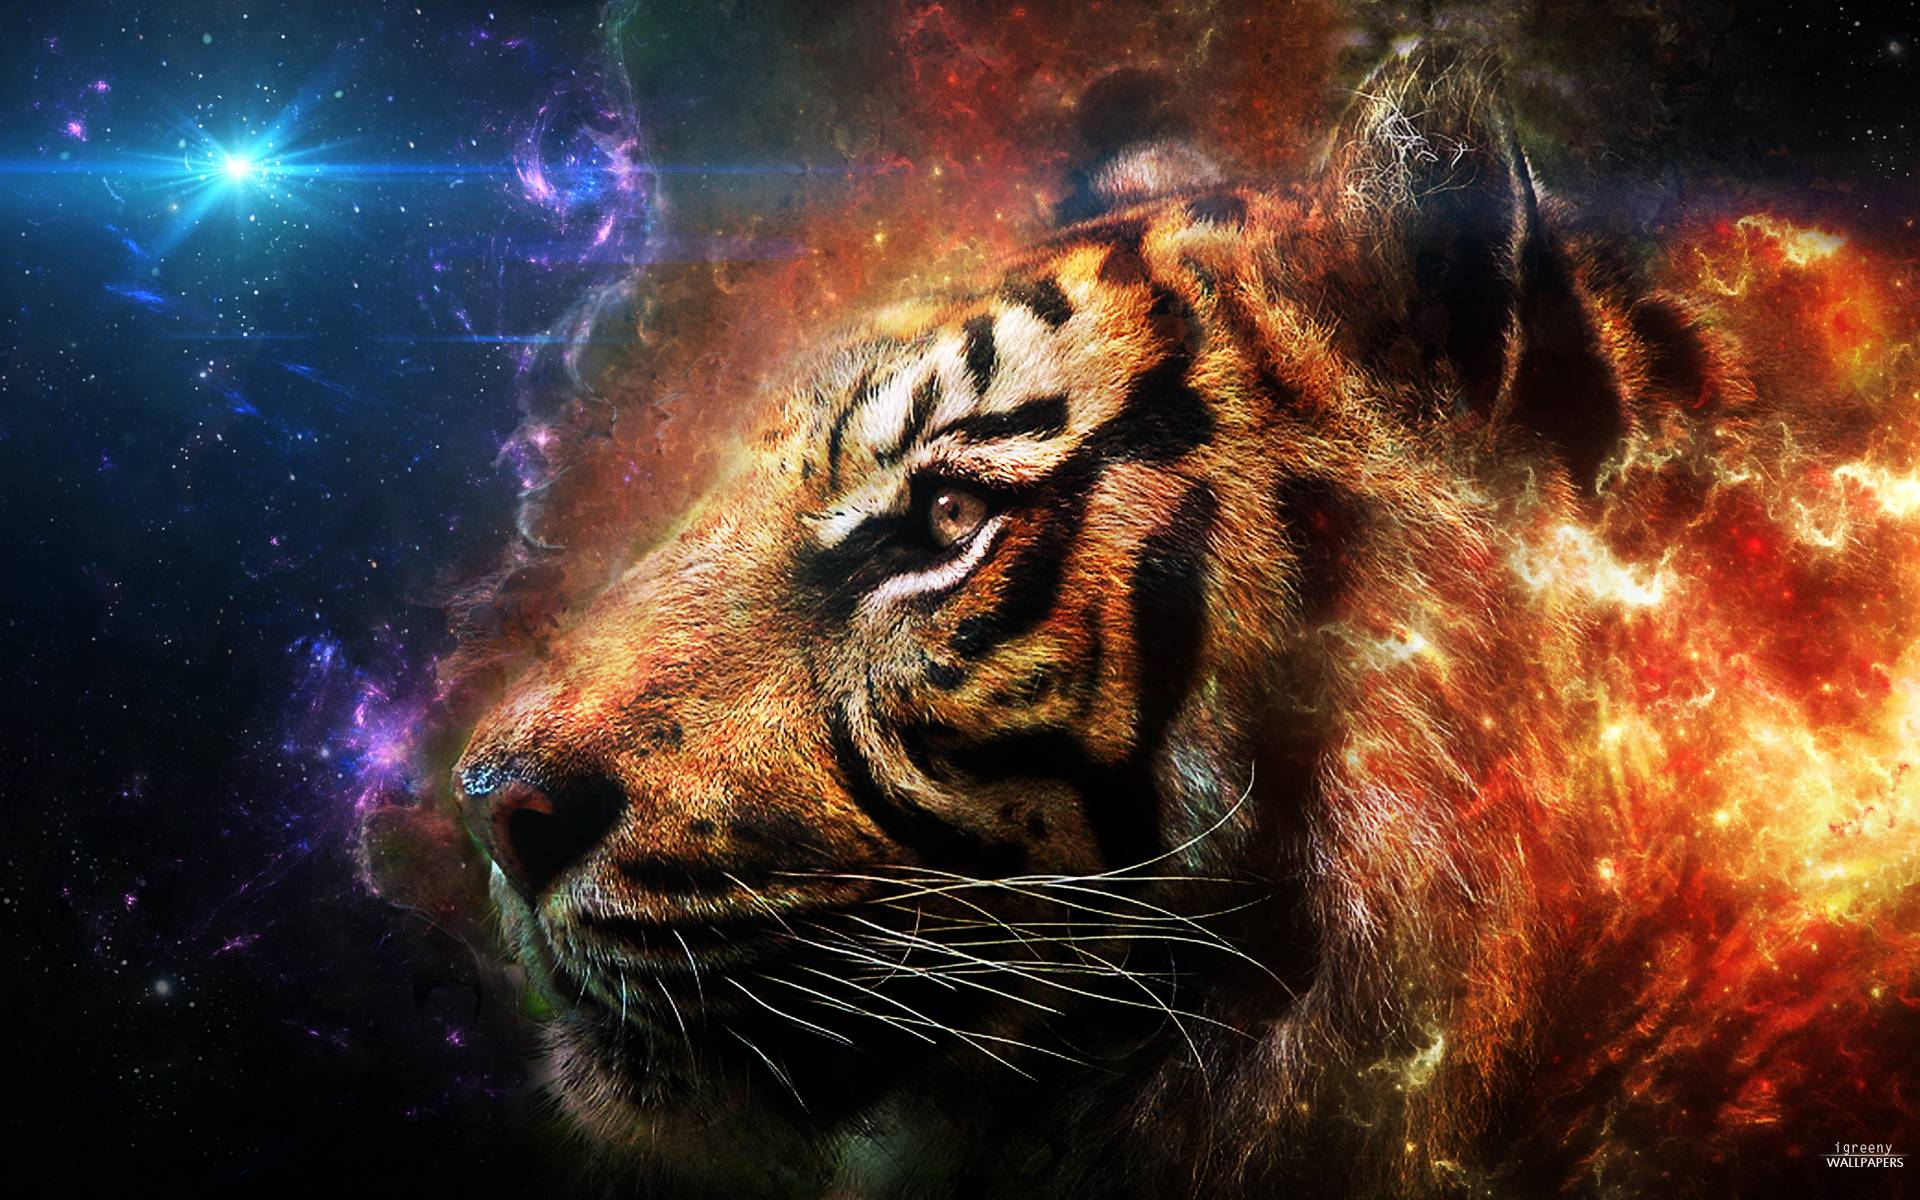 Fantasy Tiger Hd Desktop Wallpapers Widescreen High: Tiger Backgrounds Pictures